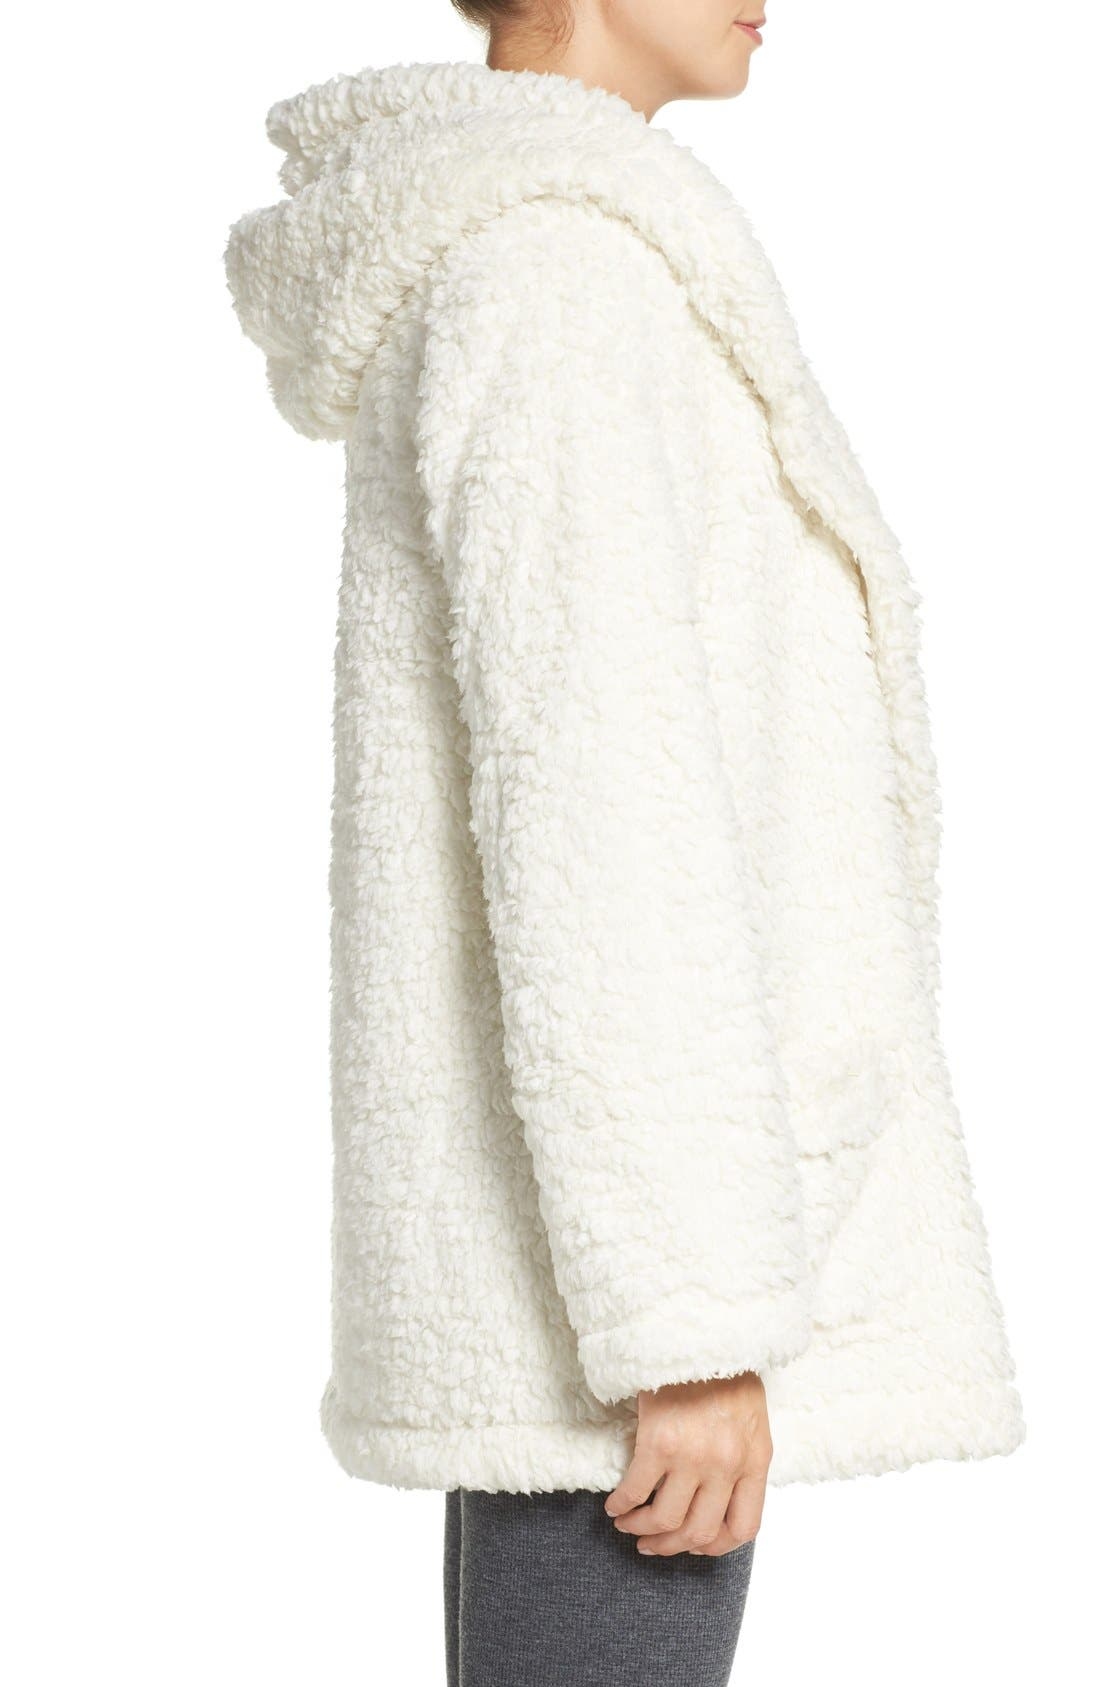 Alternate Image 3  - Make + Model 'Oh So Cozy' Hooded Cardigan